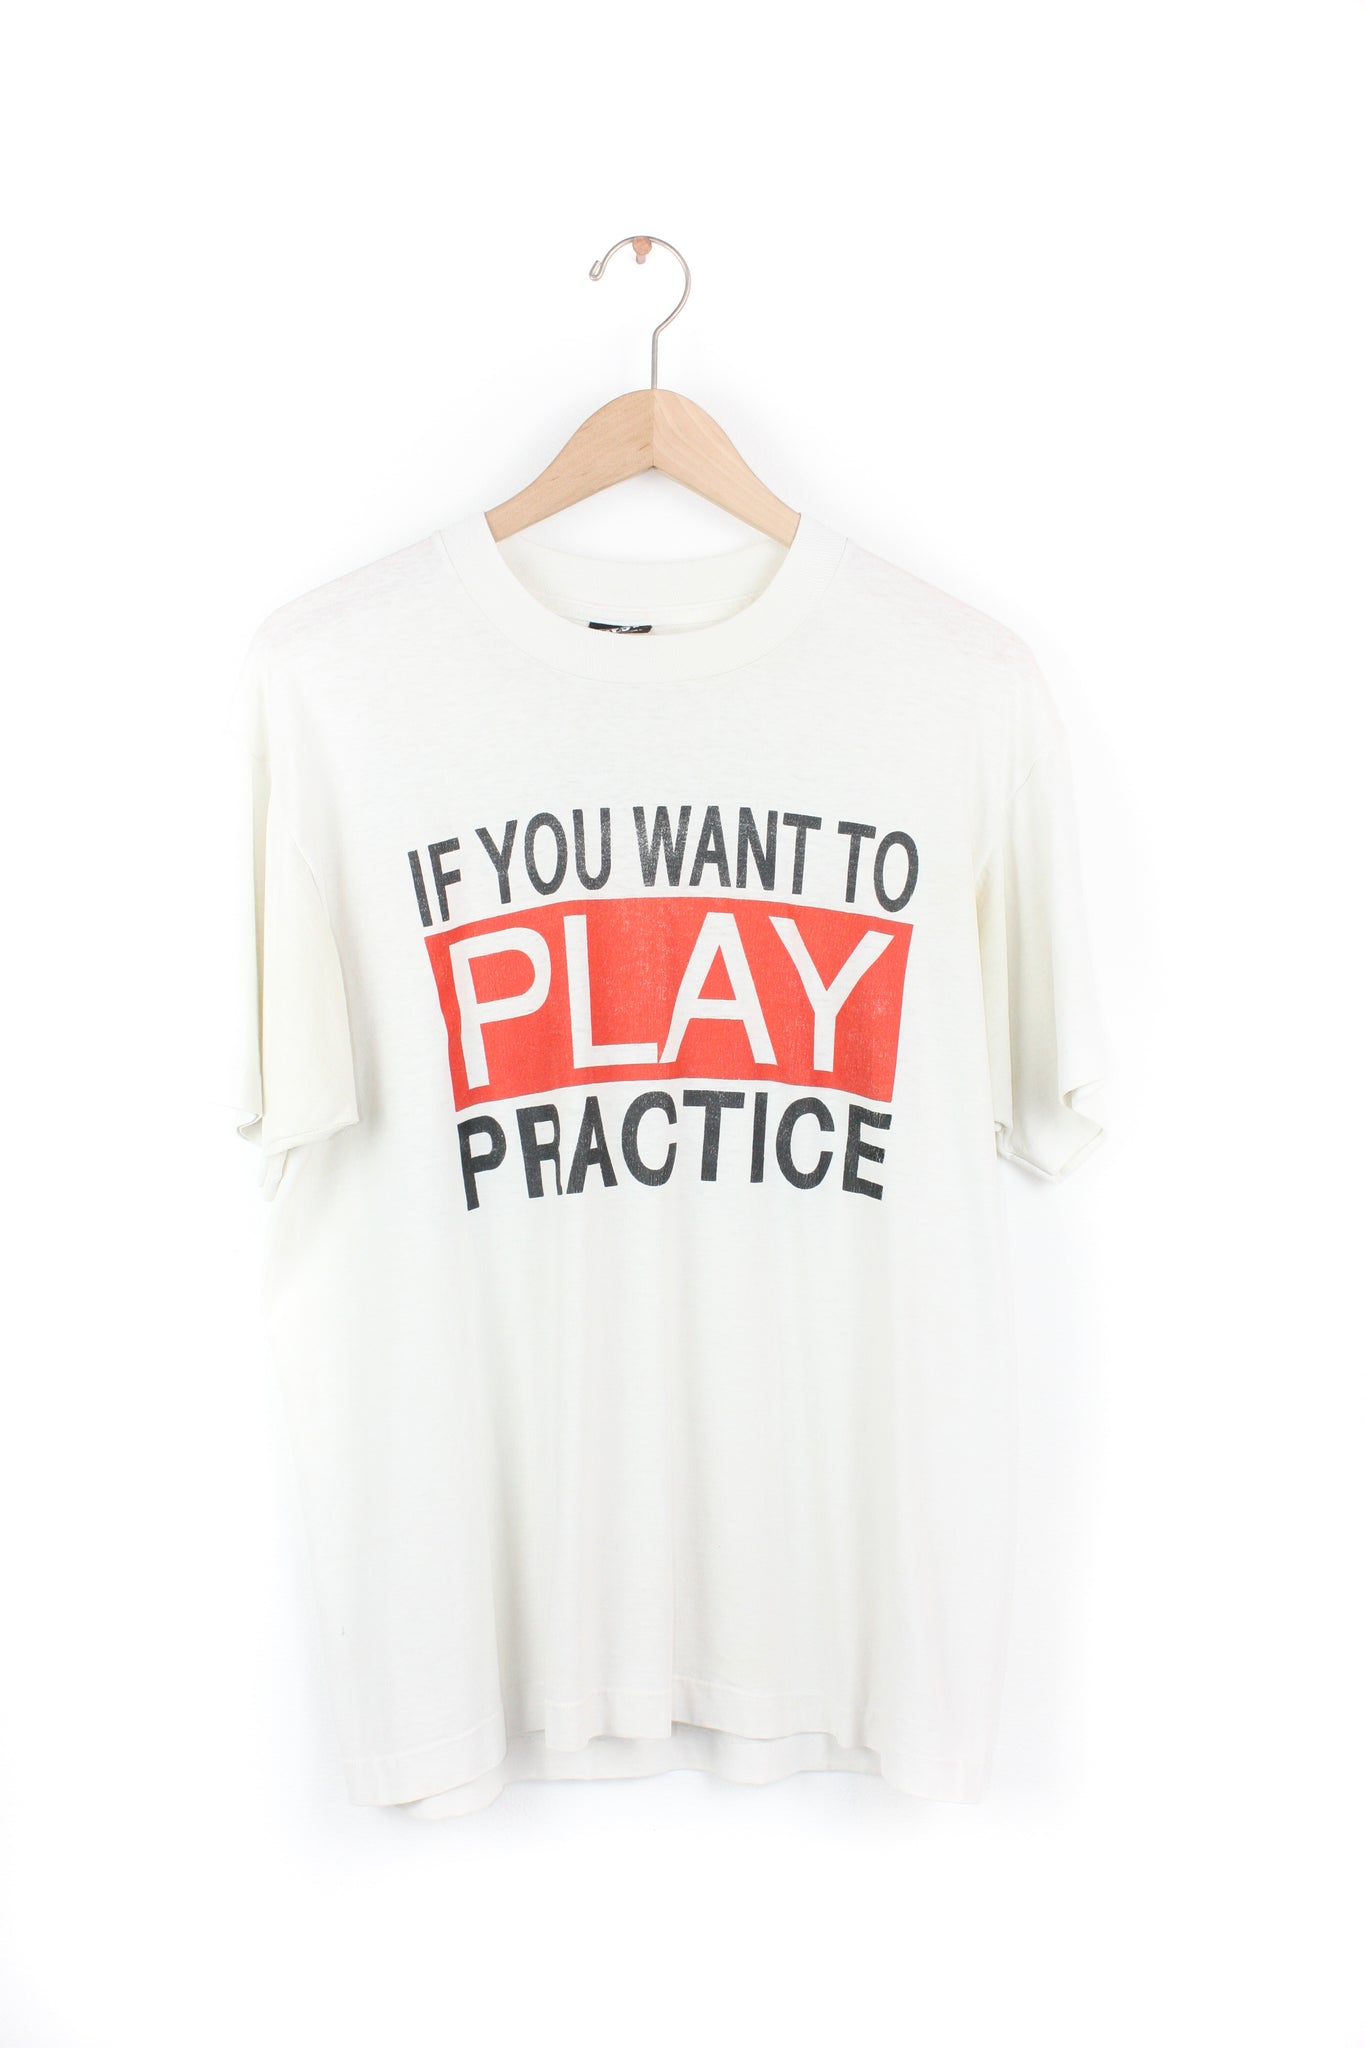 IF YOU WANT TO PLAY PRACTICE